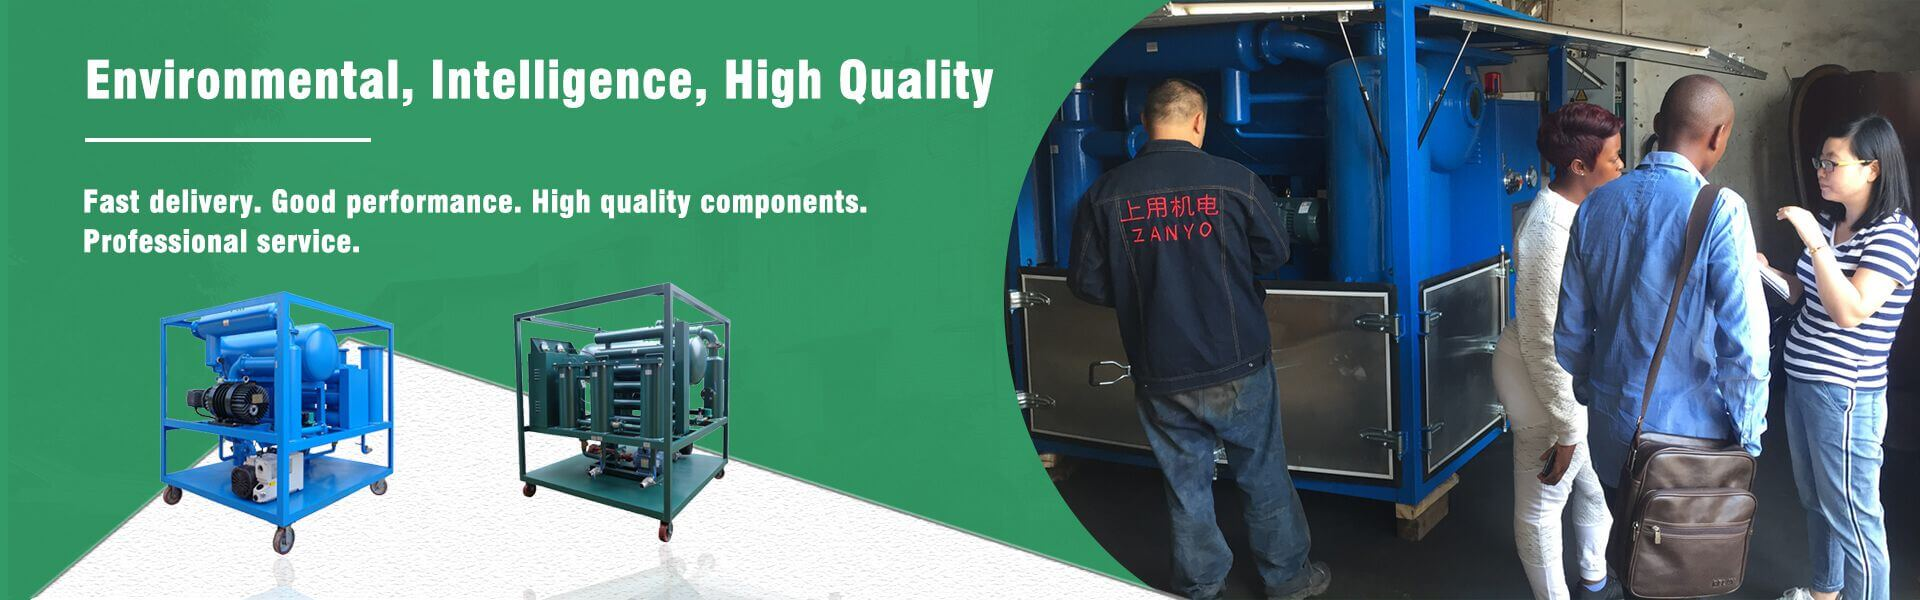 Environmental Intelligence High Quality Oil Purifier Banner 02